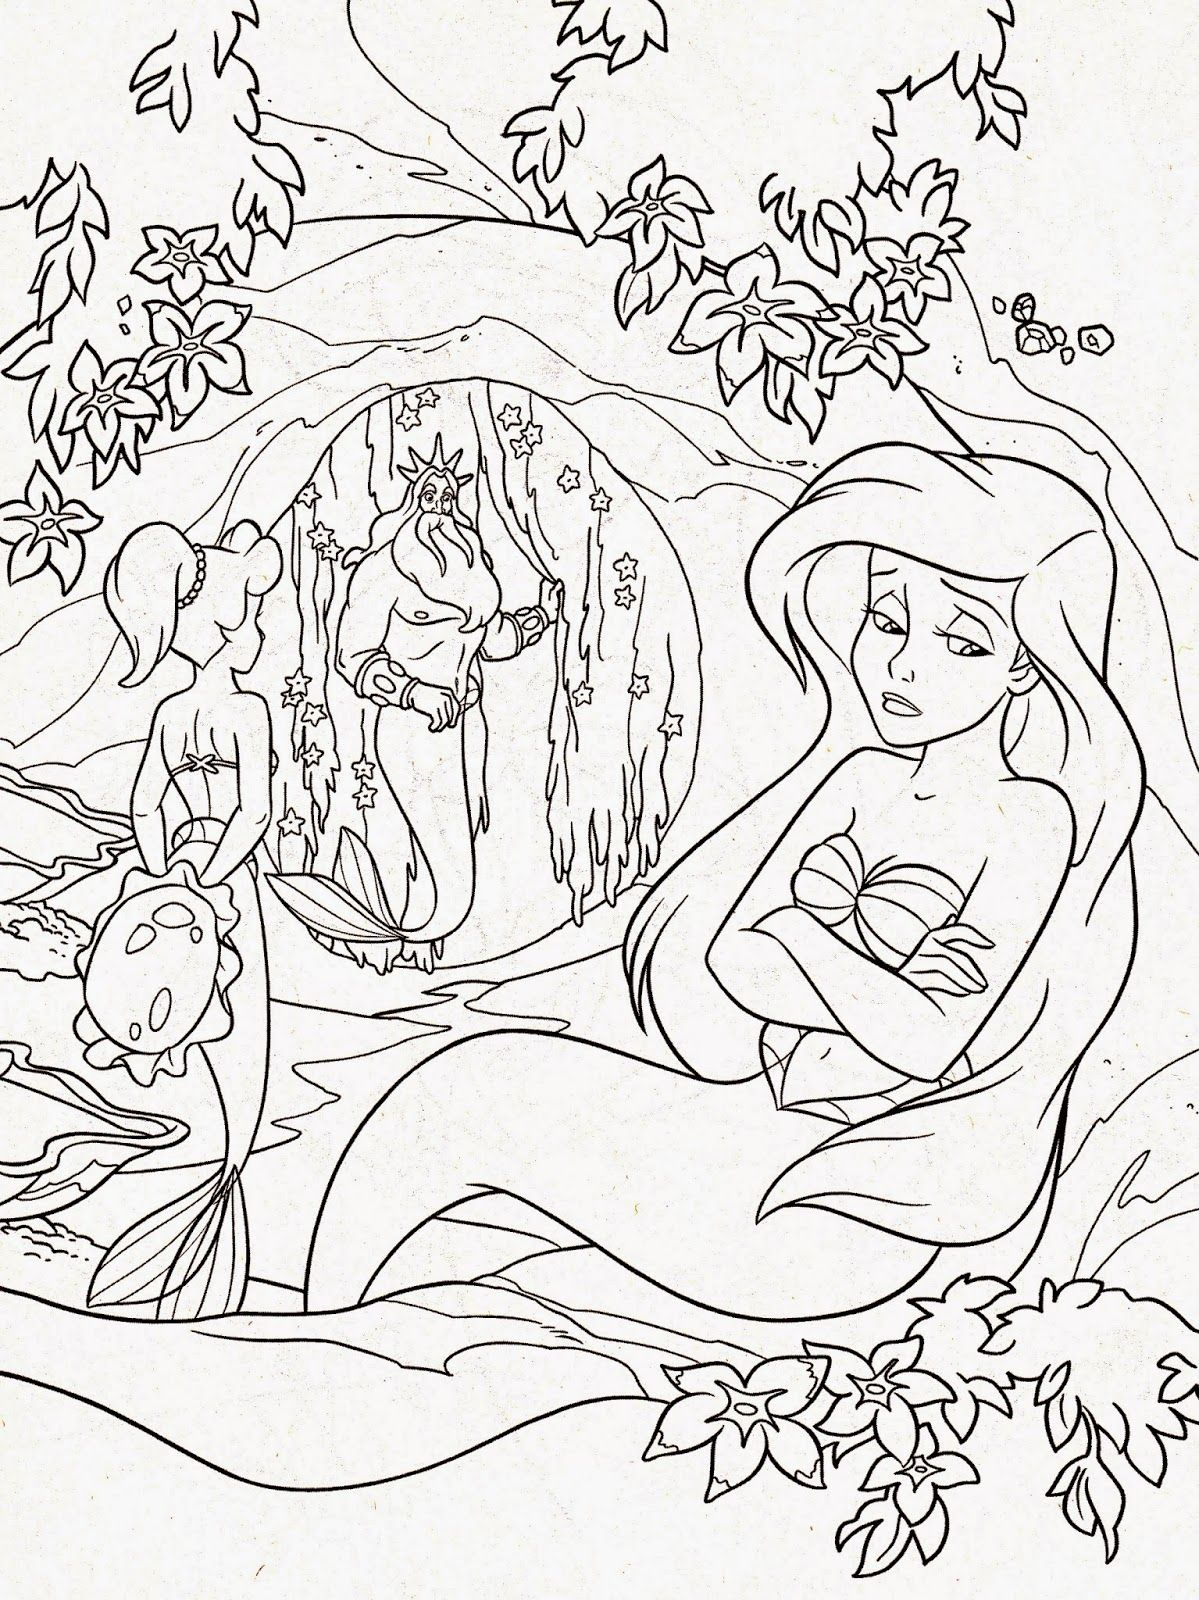 Hard Coloring Pages Of Mermaids | Coloring Online | Adolt Colouring ...